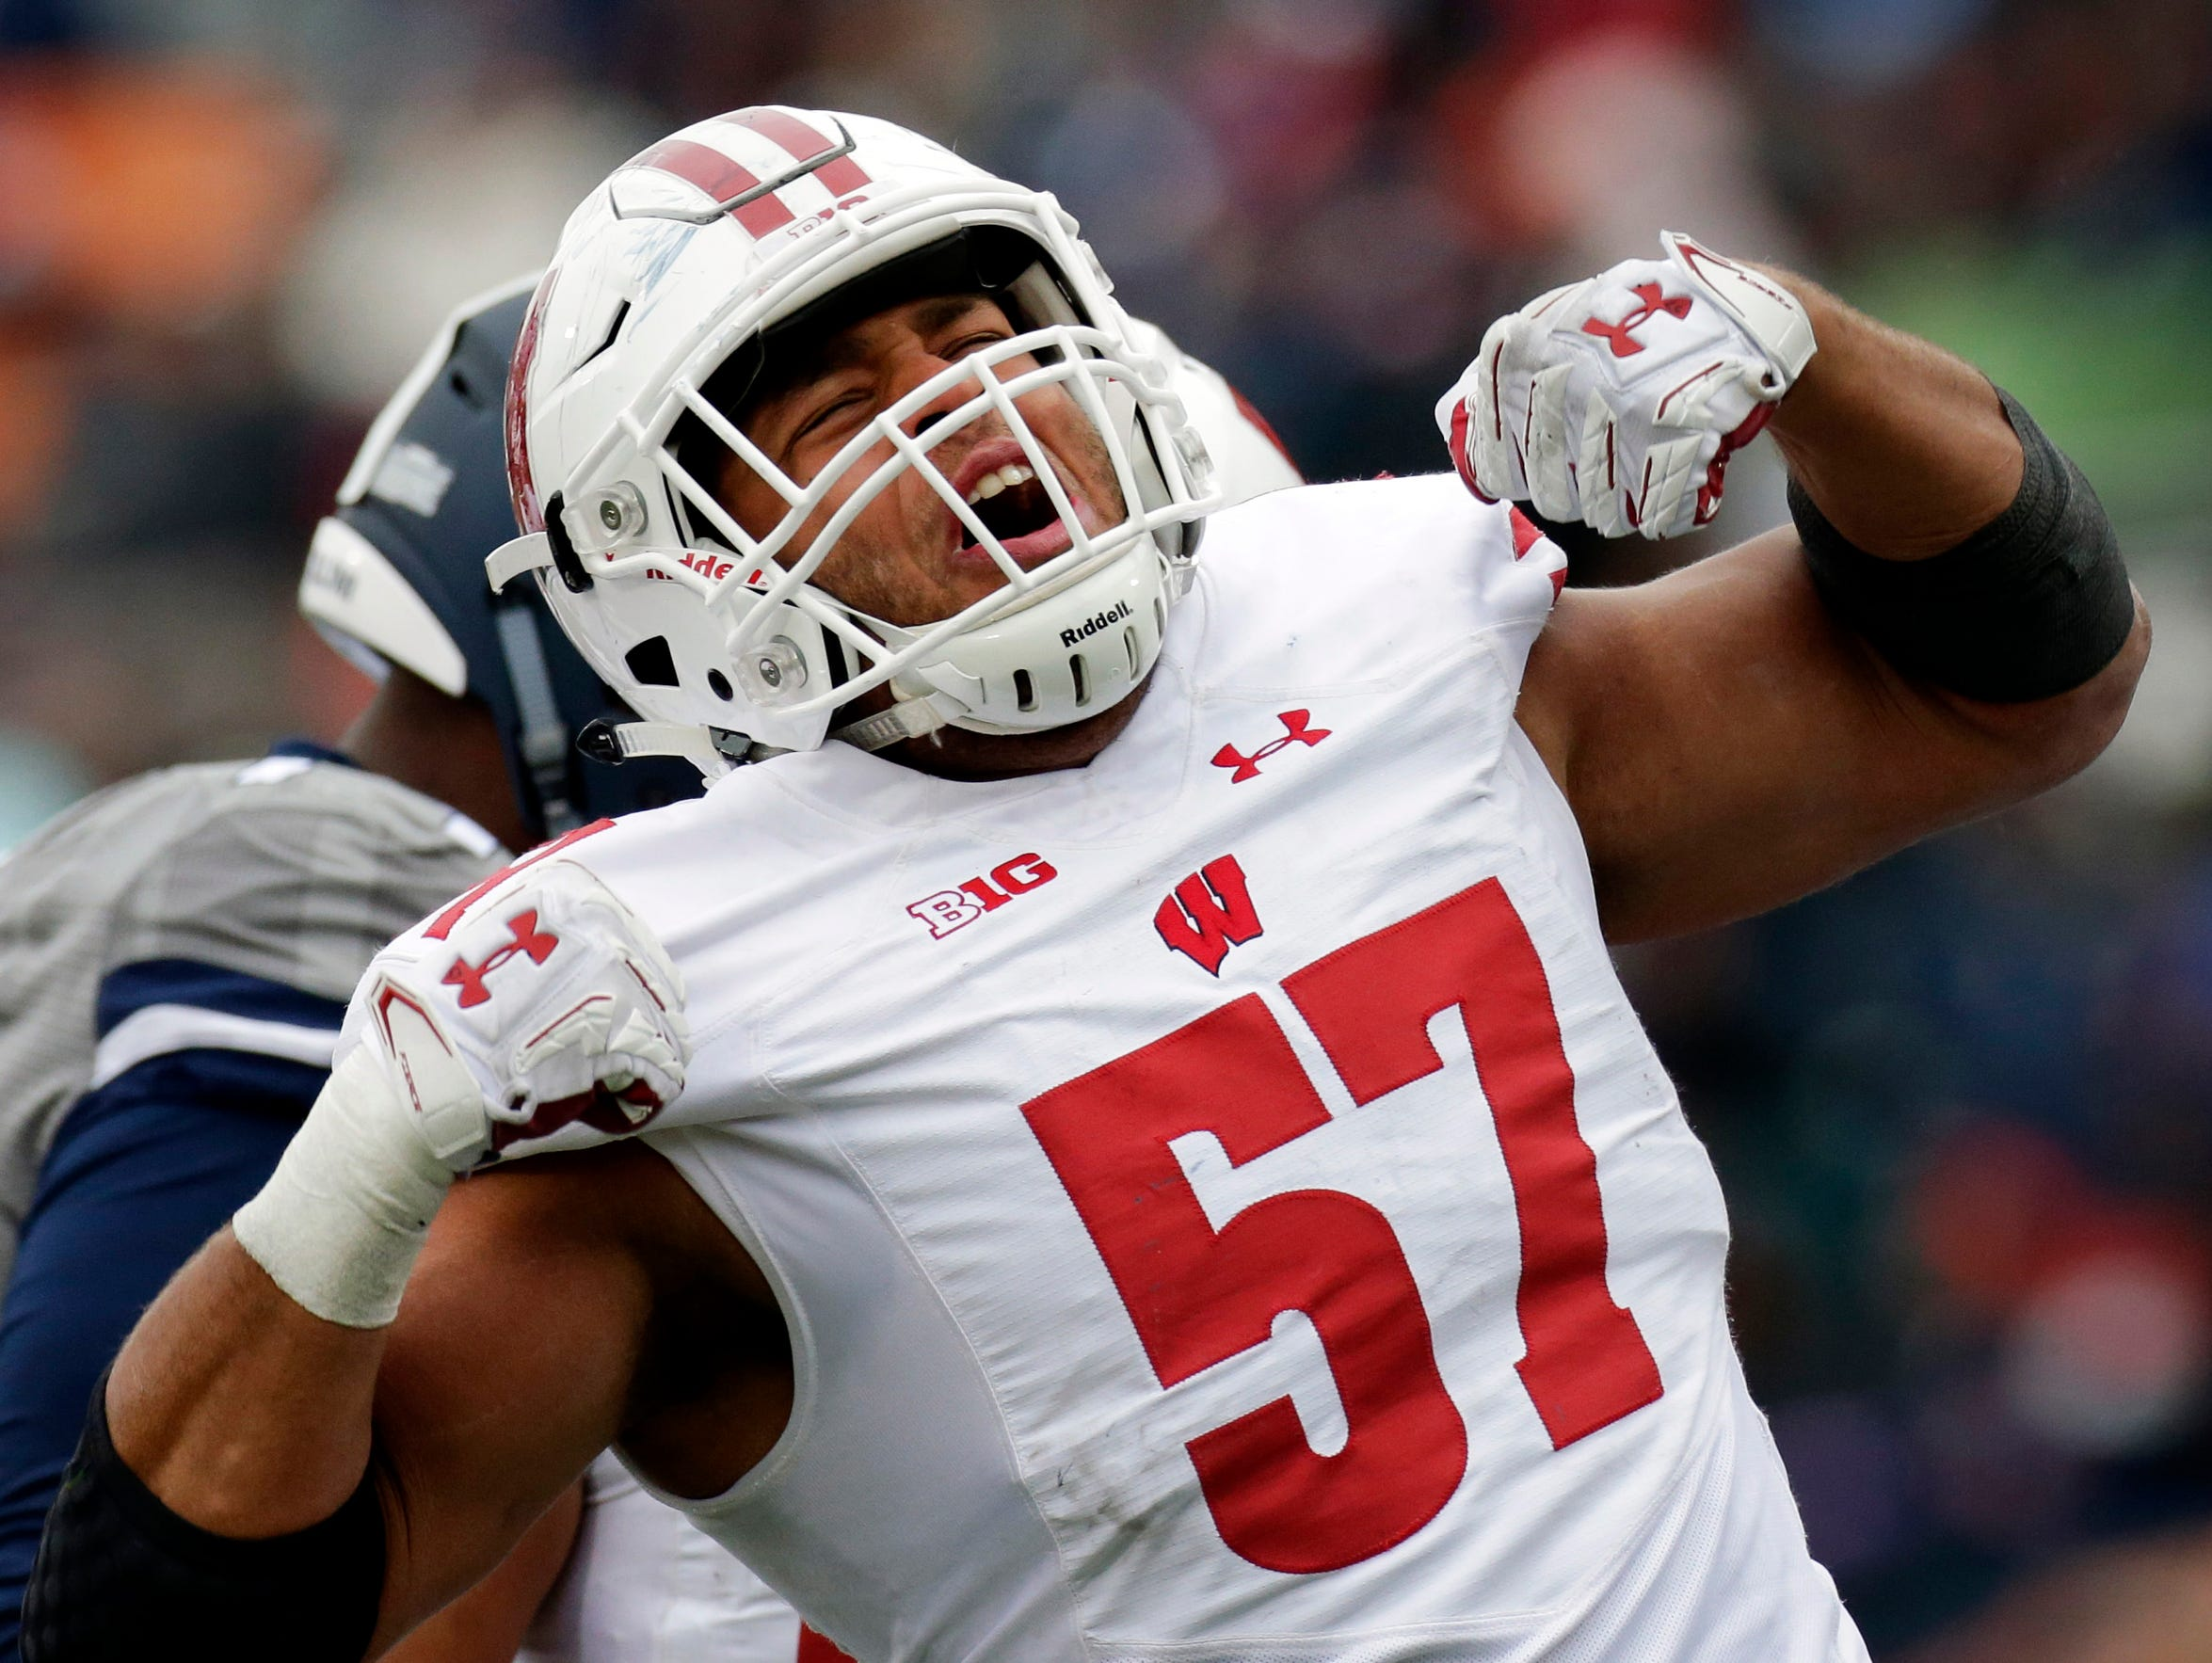 Wisconsin defensive lineman Alec James is jacked up after his sack of Illinois quarterback Cam Thomas for a 10-yard loss during the third quarter during a game earlier this season. James, a Brookfield East graduate, has started all 12 games on the defensive line.